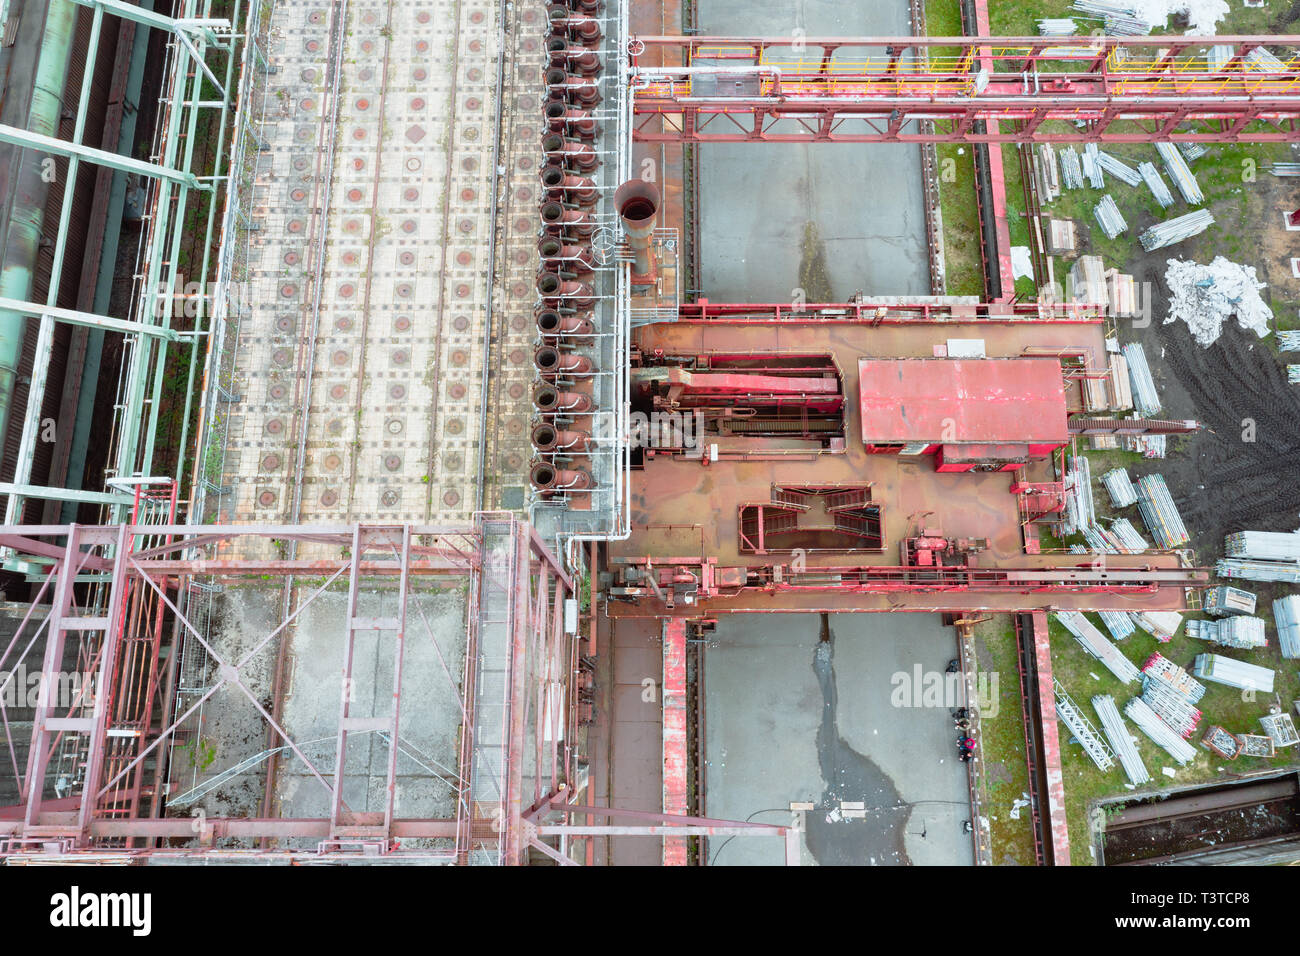 Aerial drone detail of Zollverein big old abandoned industrial complex in Essen, Germany, view from above under. - Stock Image